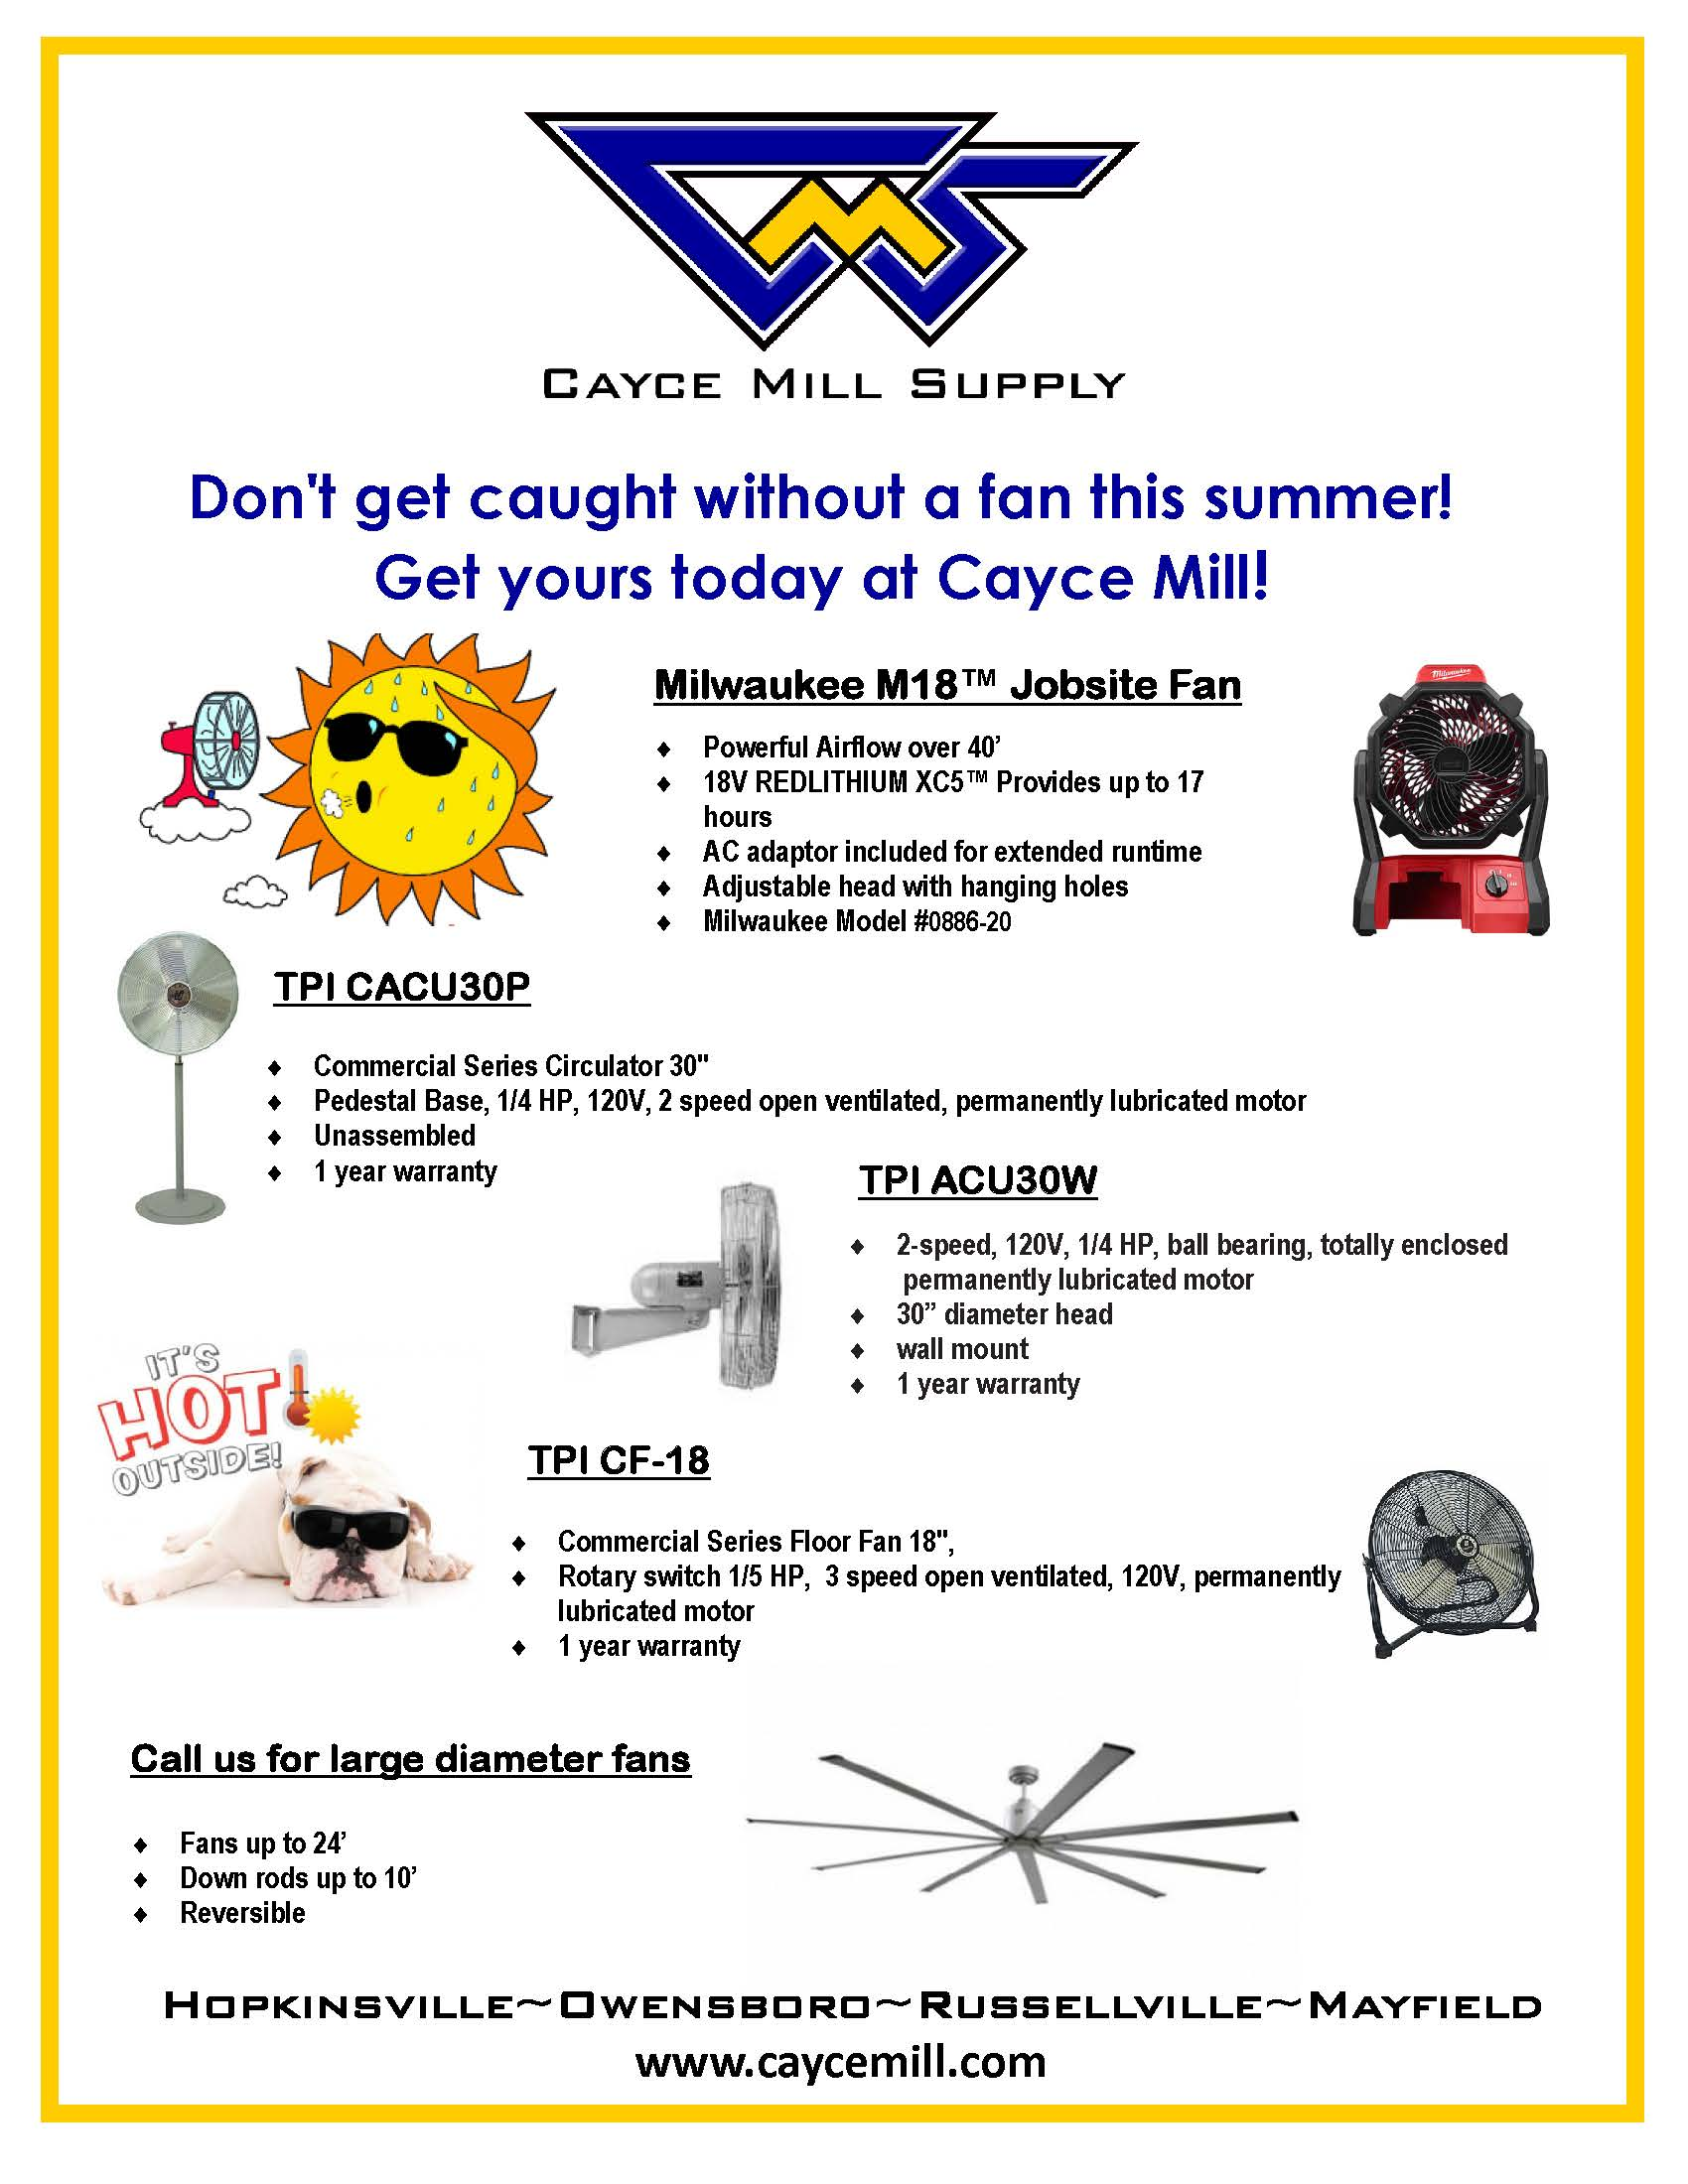 Get Your Fan at Cayce Mill Supply!